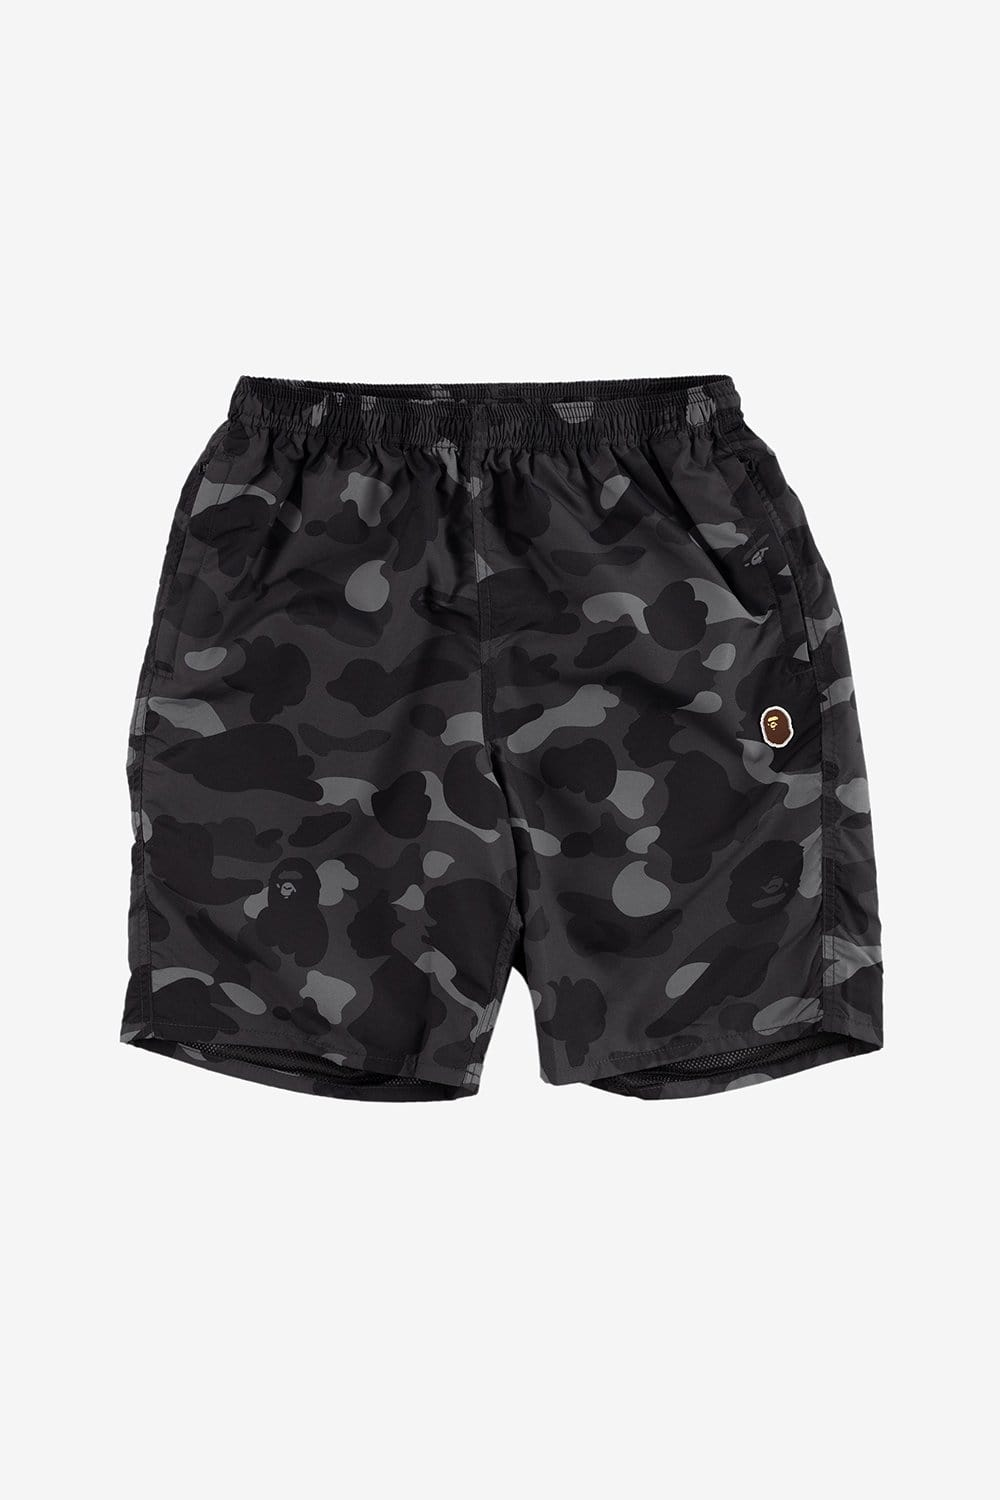 A Bathing Ape Apparel Camo Beach Pants Black